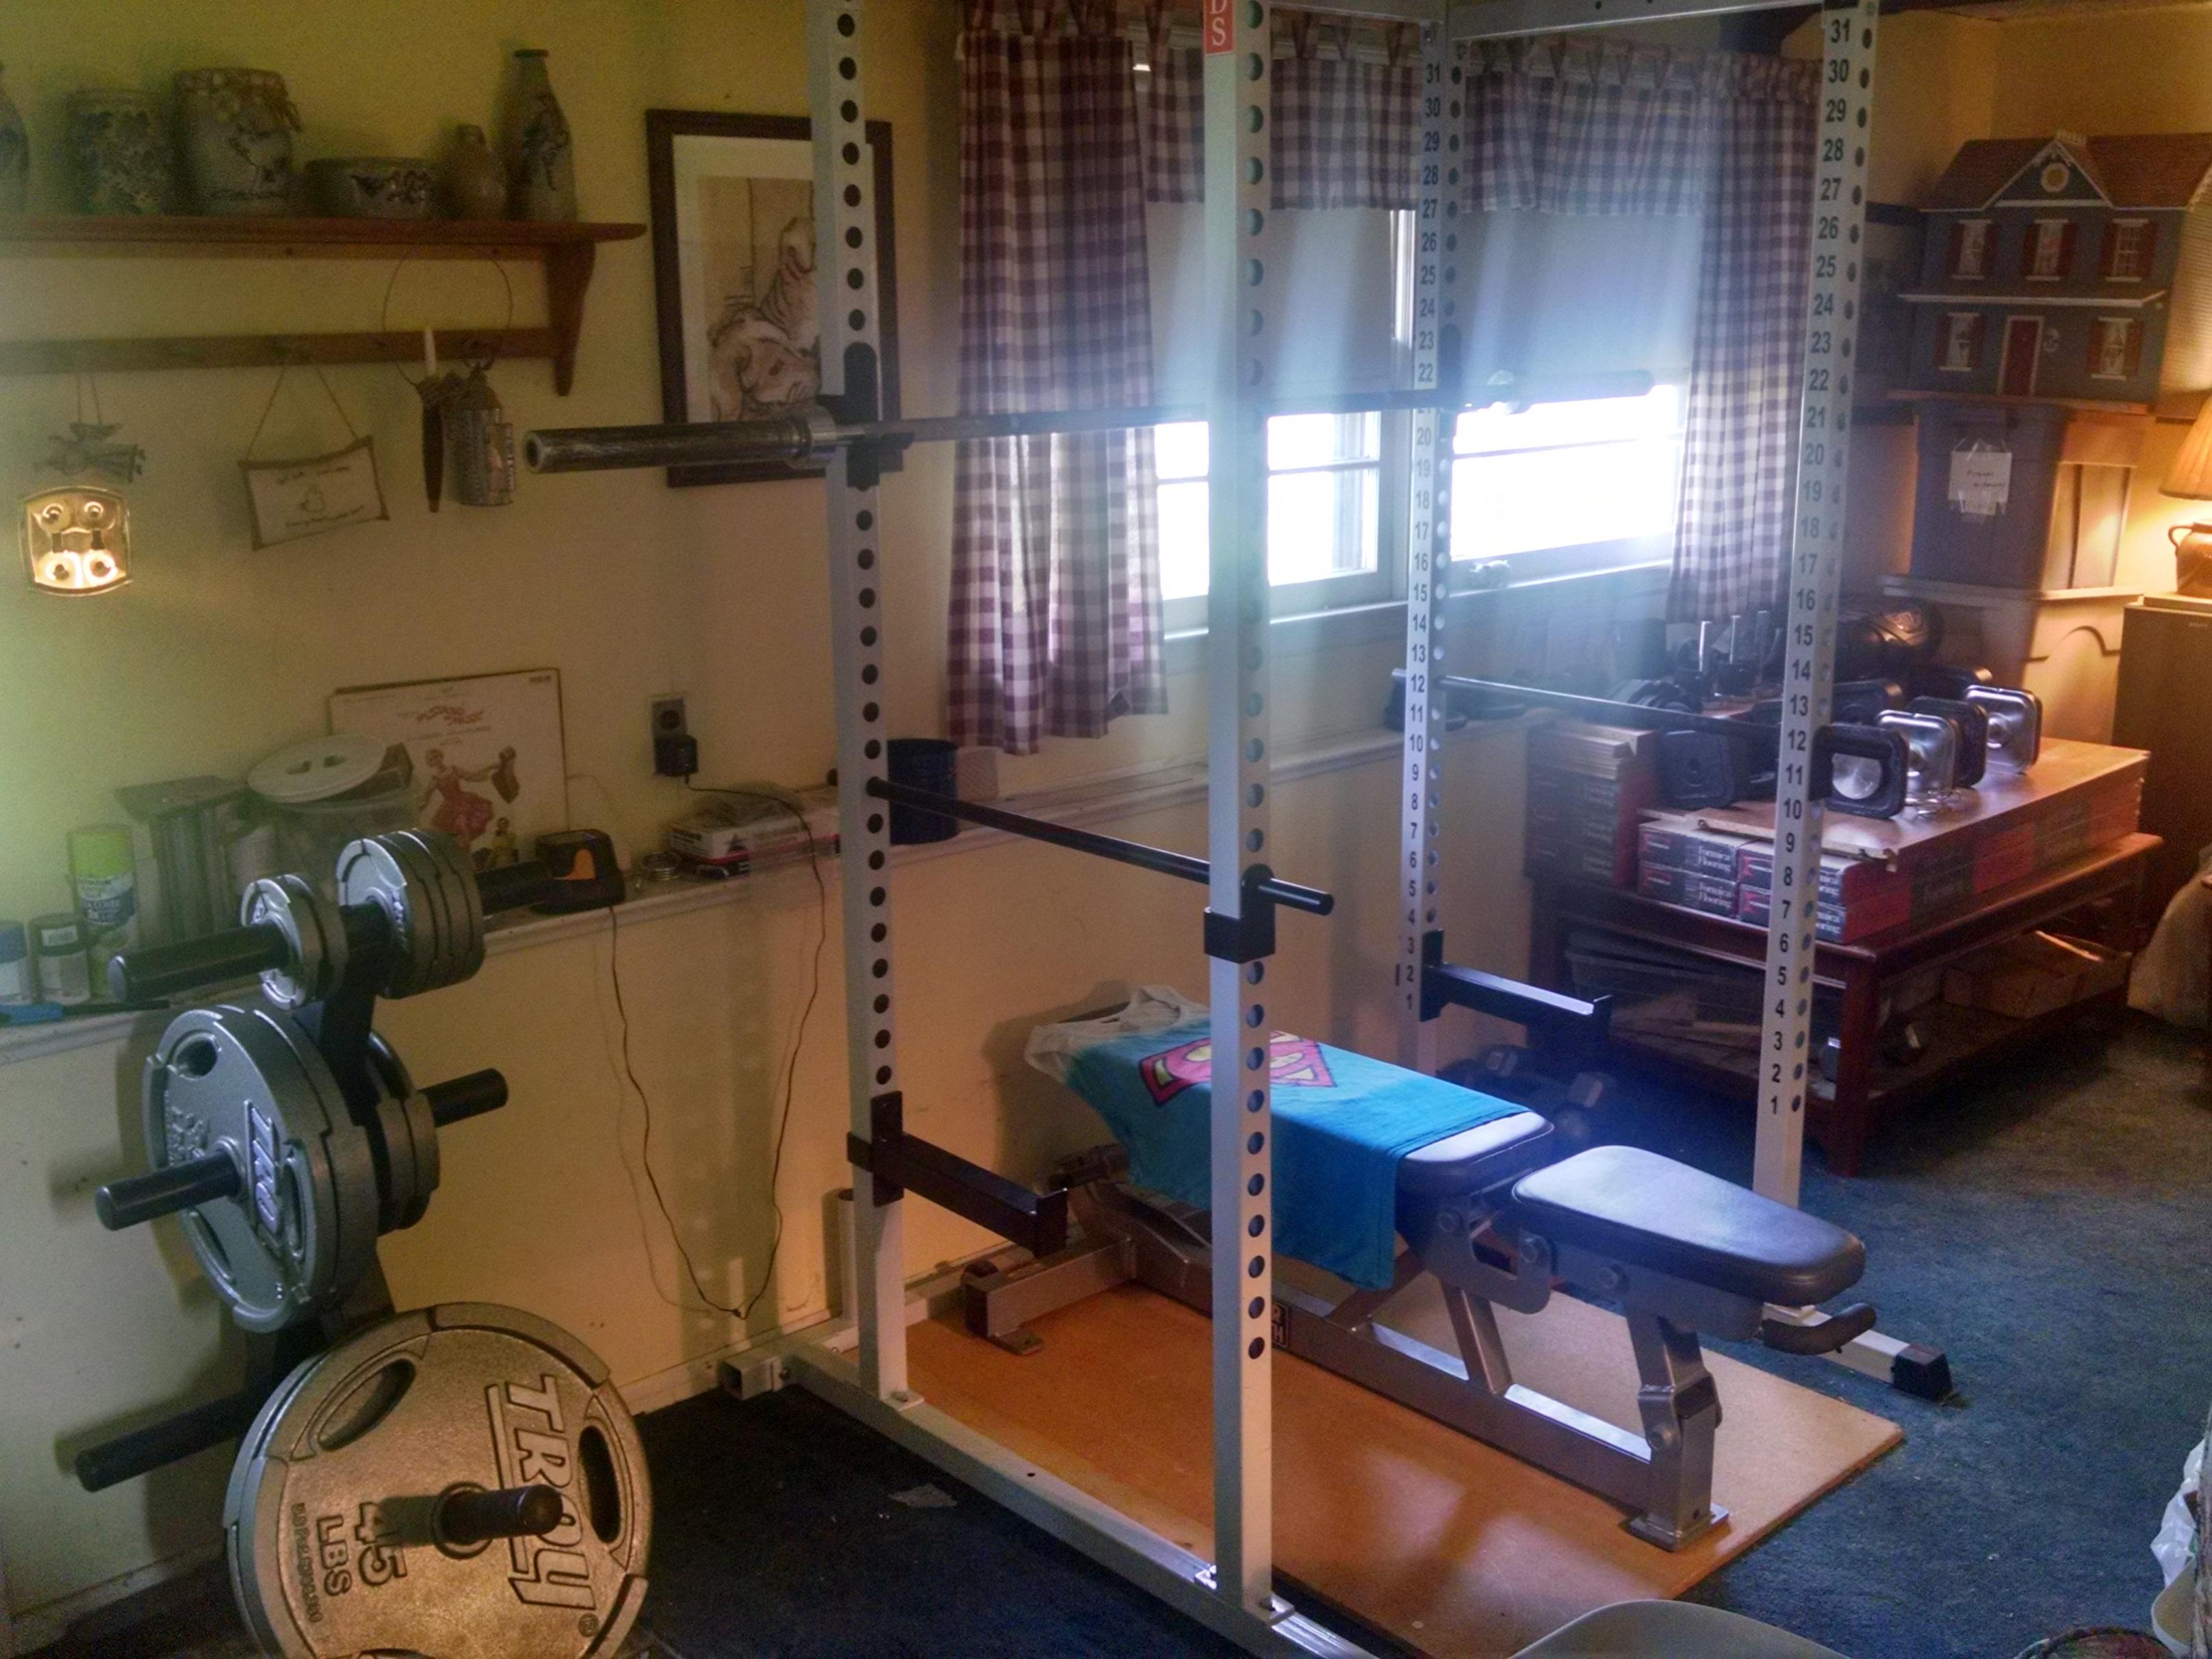 Home gym showoff cost for a lifetime investment